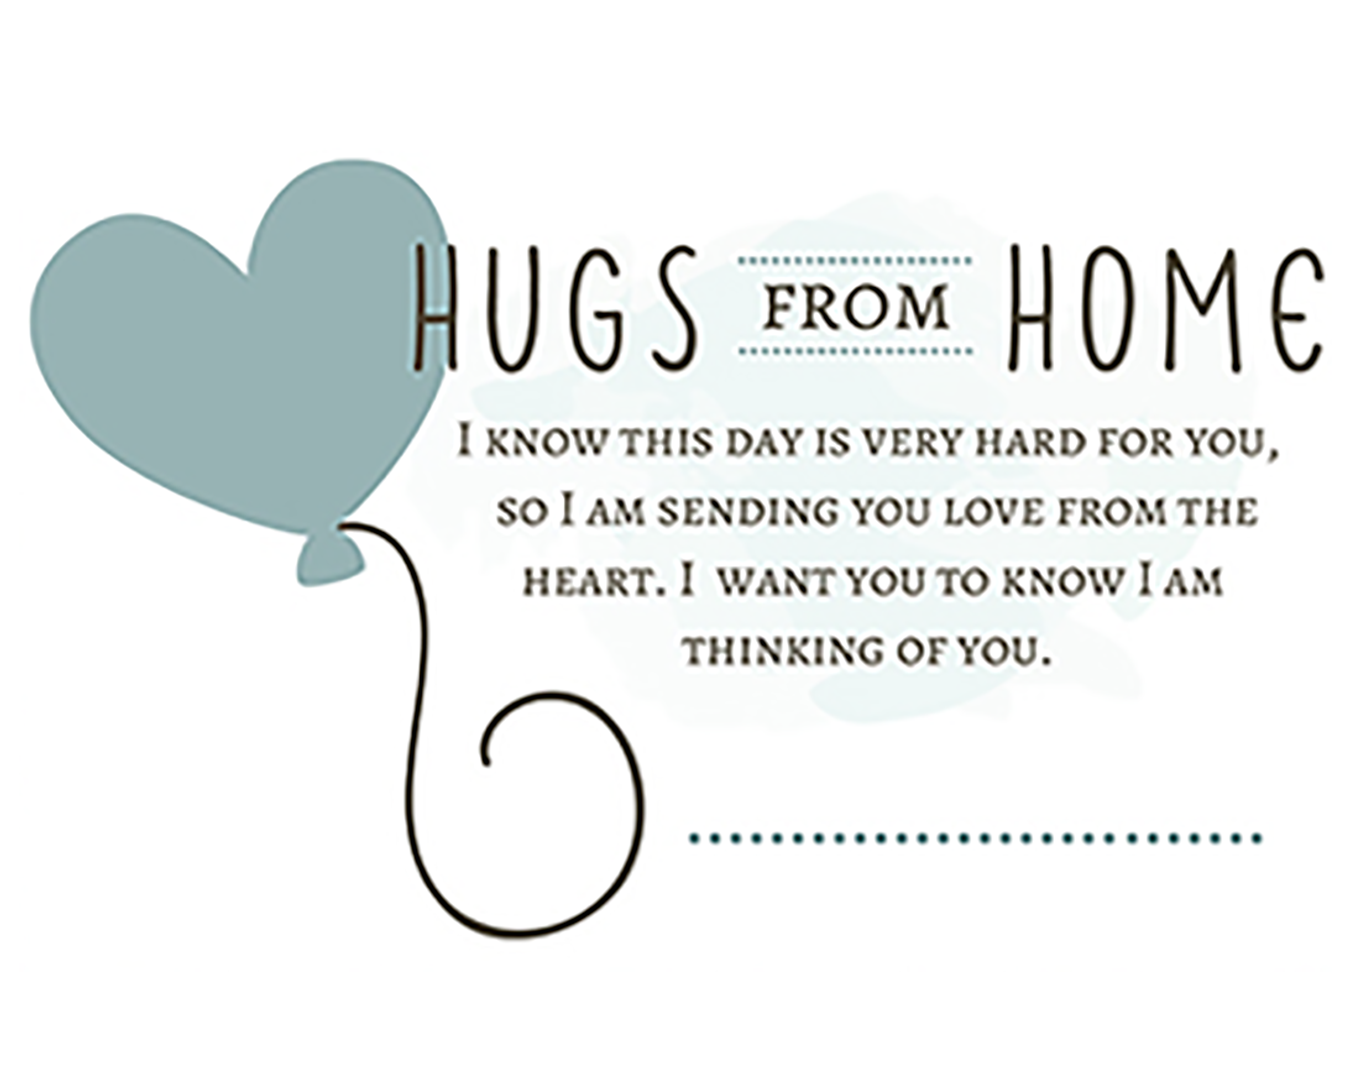 Hugs from Home